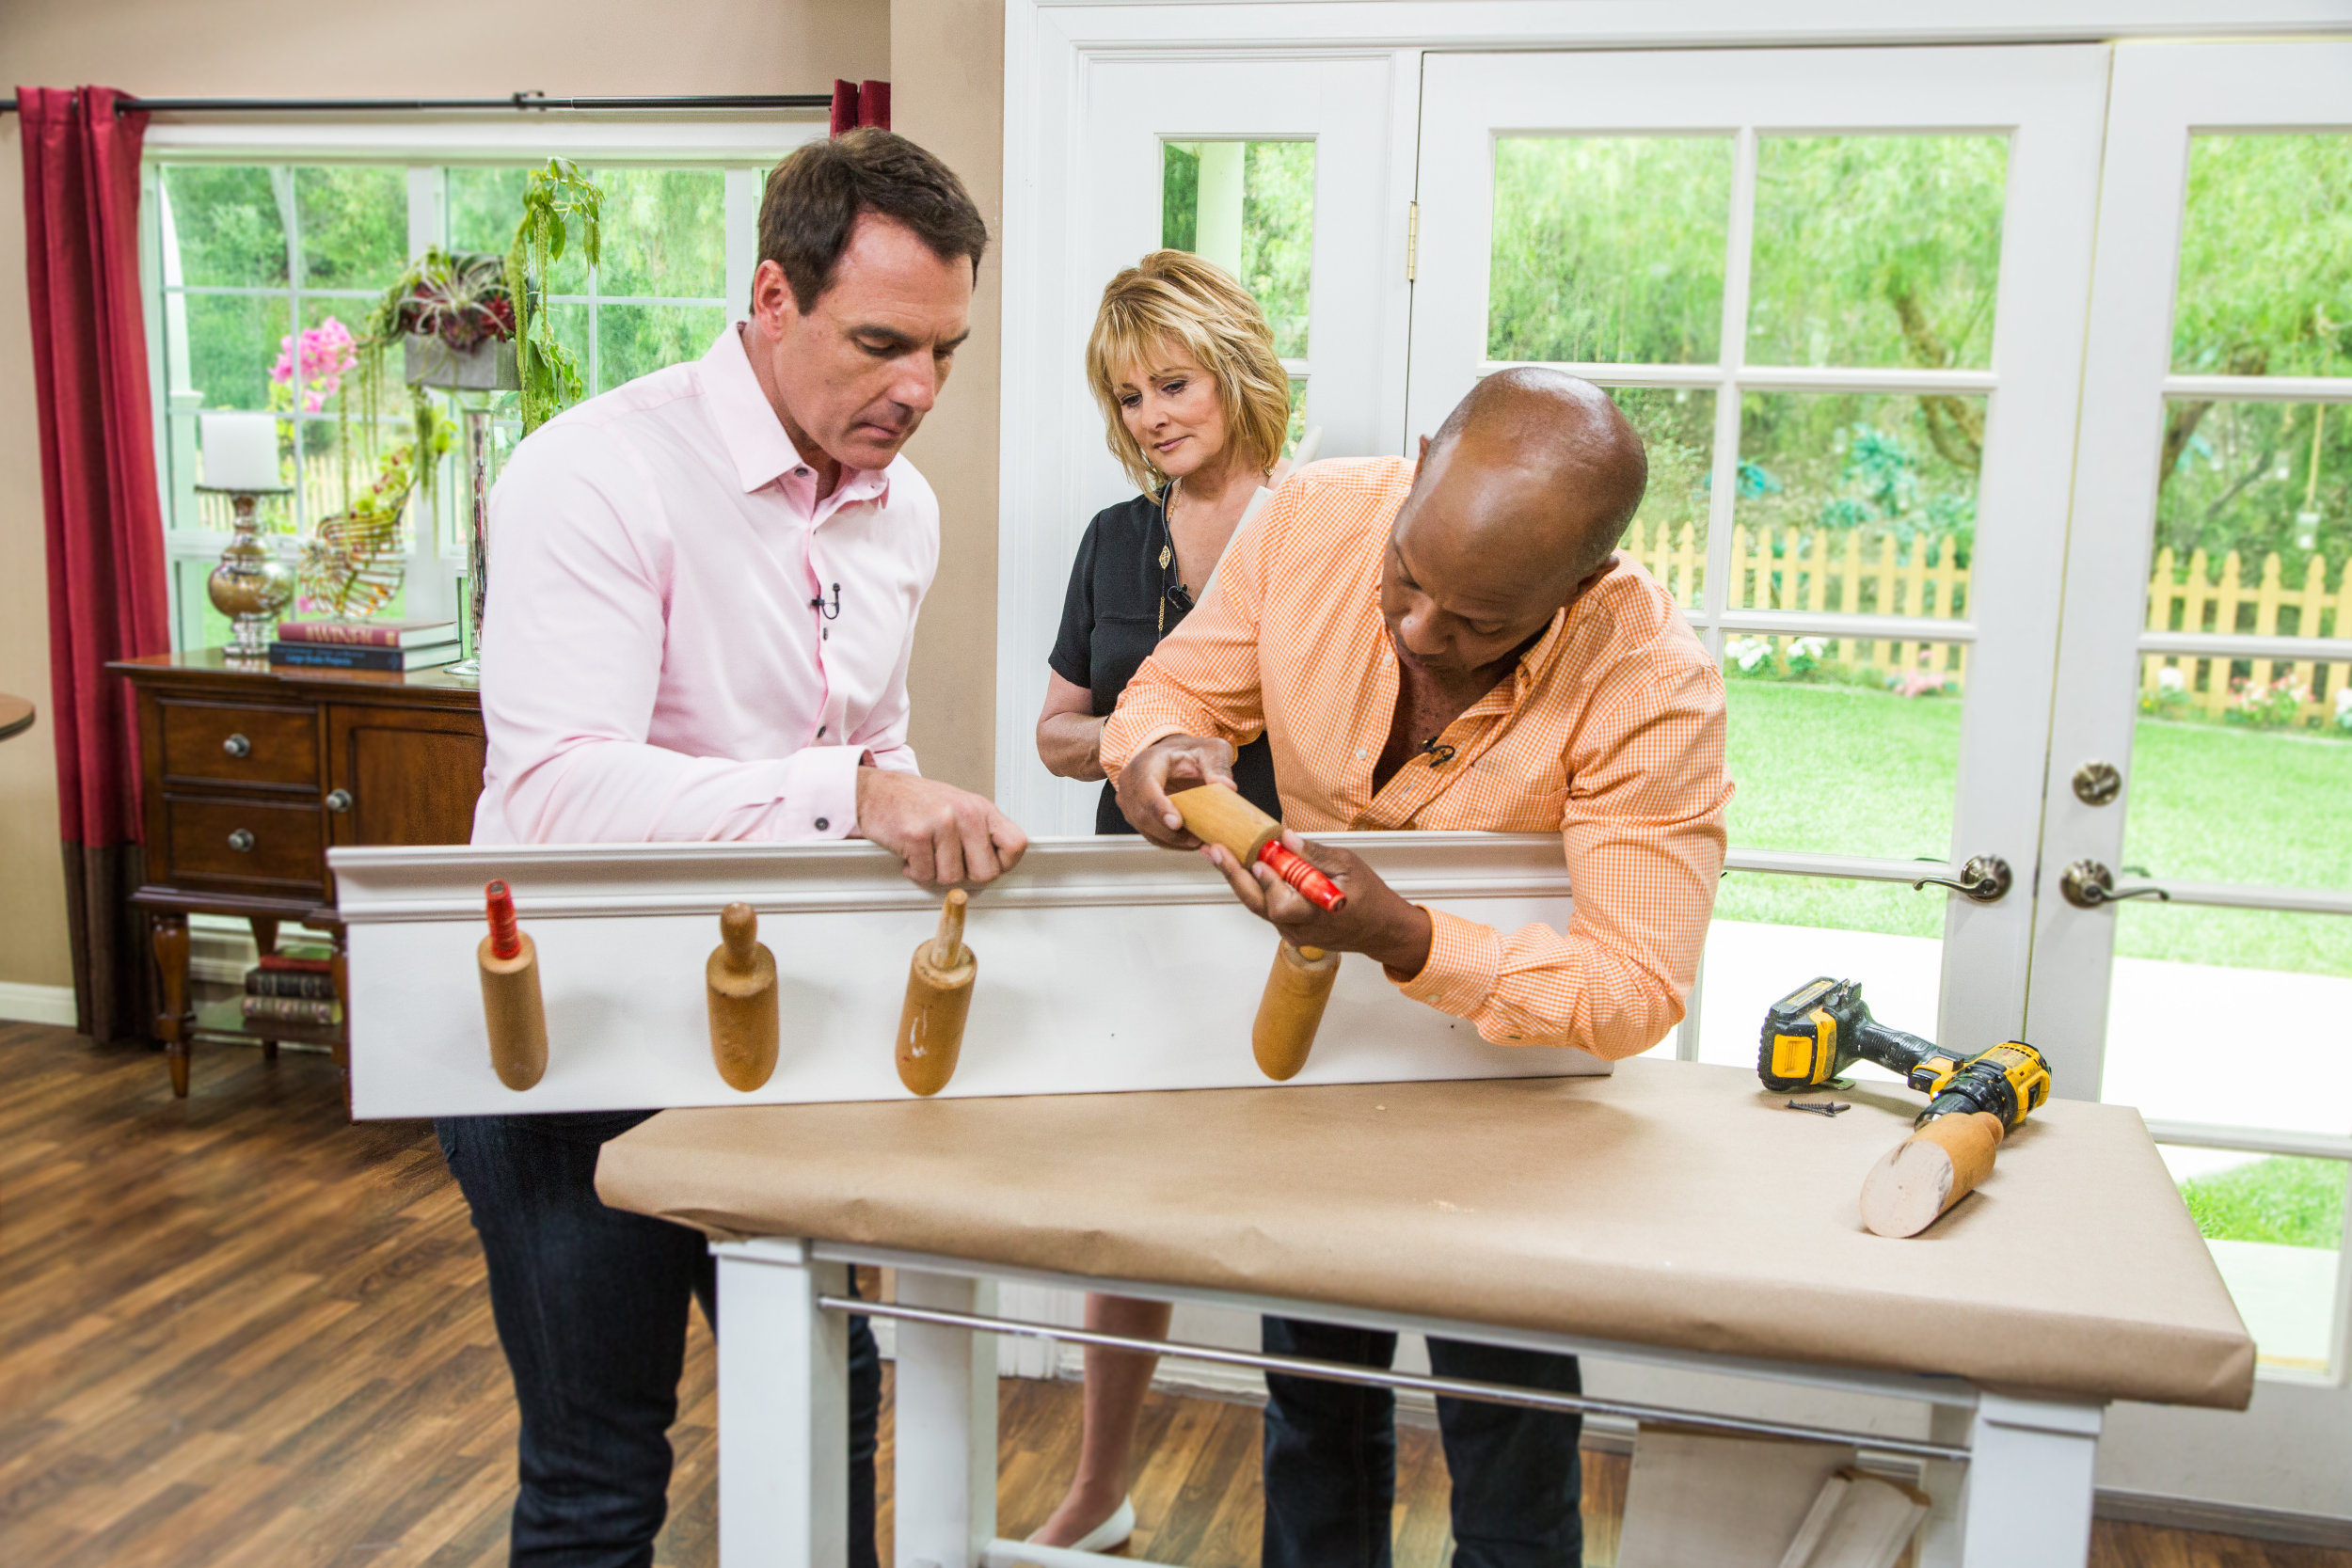 Do It Yourself Rolling Pin Rack - Home & Family - Video | Hallmark